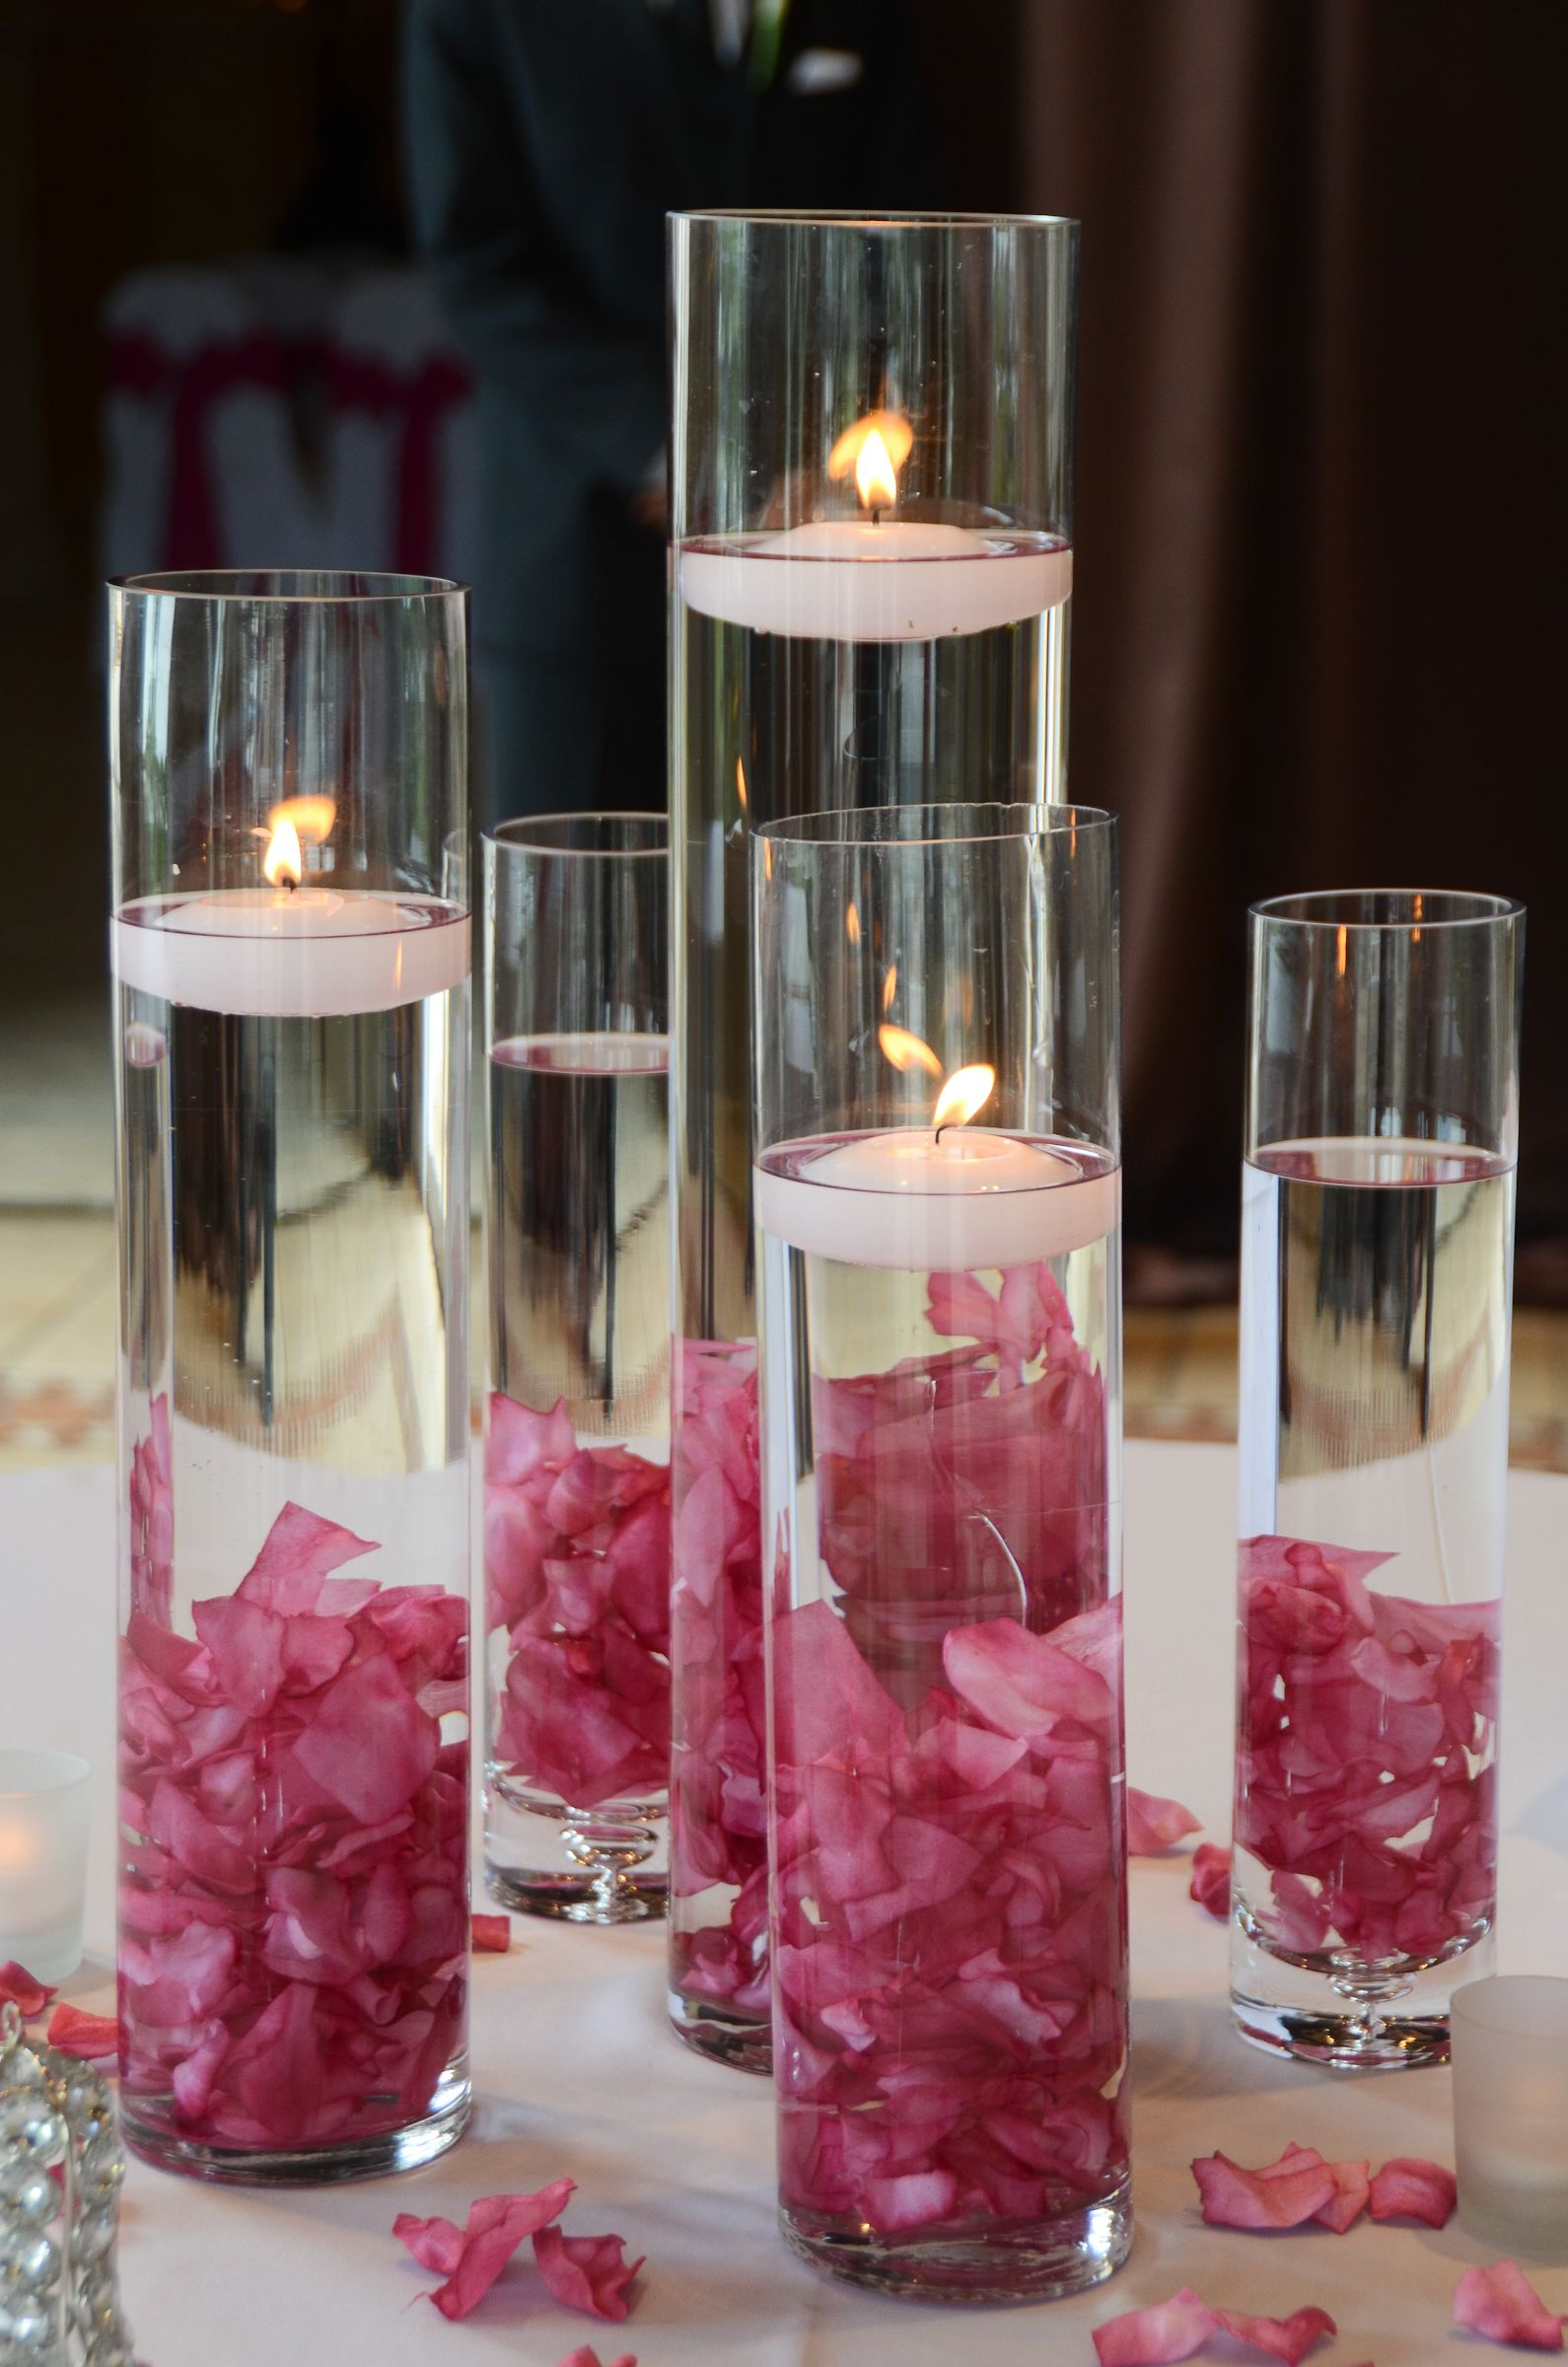 pinterest wedding table decorations candles%0A Table decorations     weddings  candles http   celebrationsoftampabay com